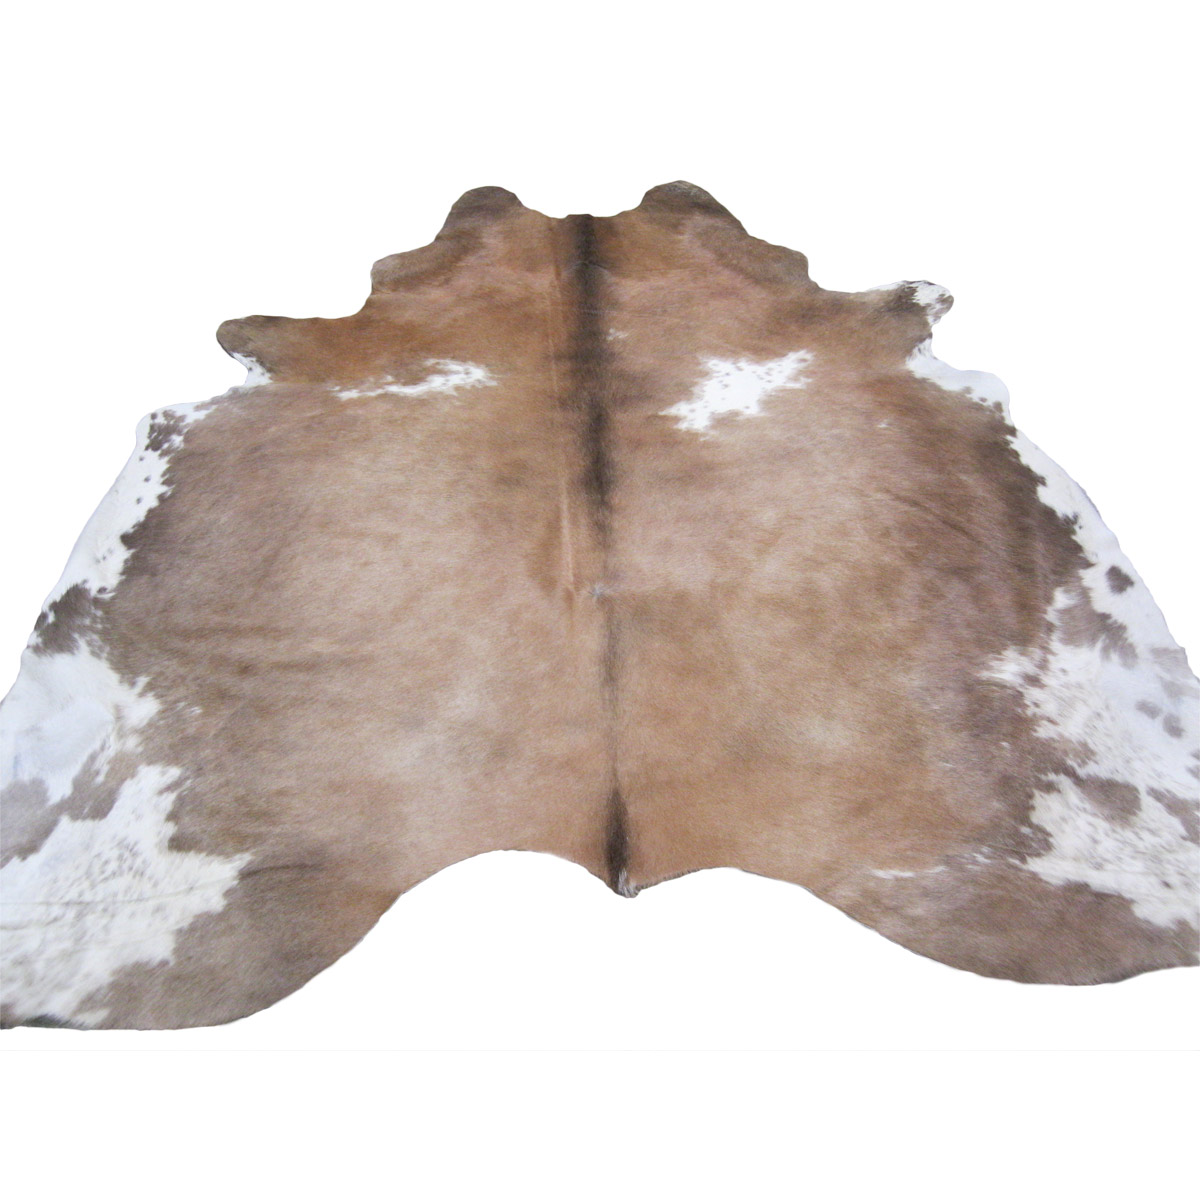 Black Forest Decor Cowhide rug - tan & white